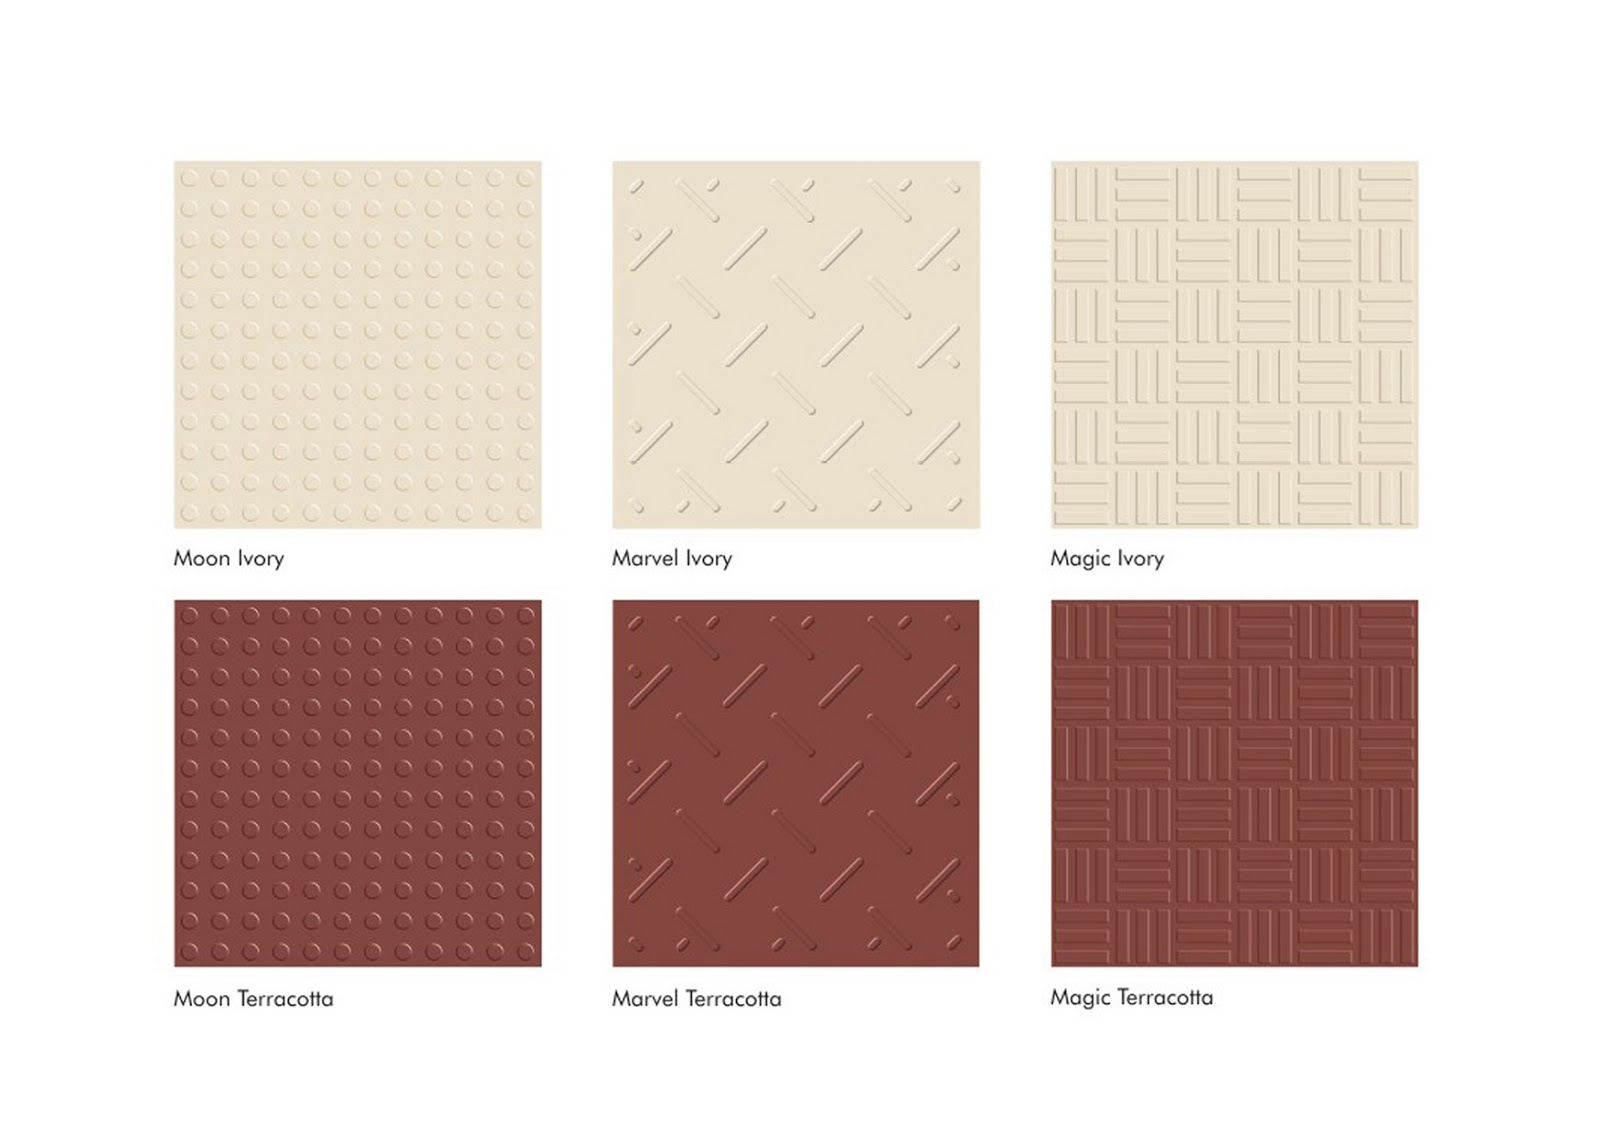 Heavy Duty Durato Tiles For Car Porch Parking Tiles Designs In India